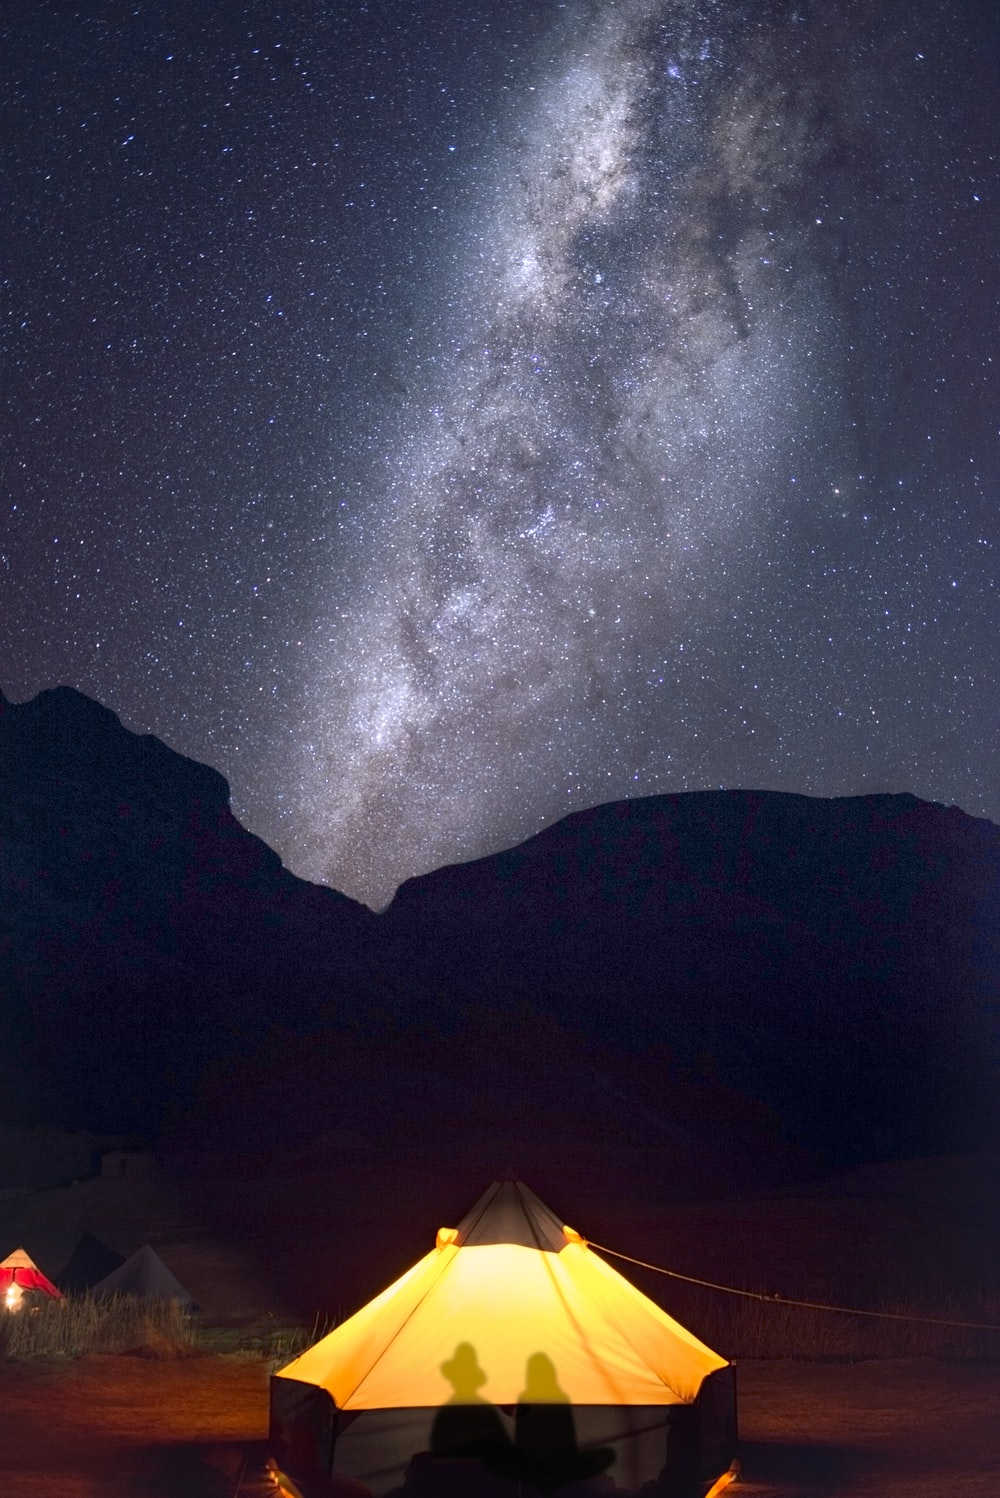 brown tent under starry night